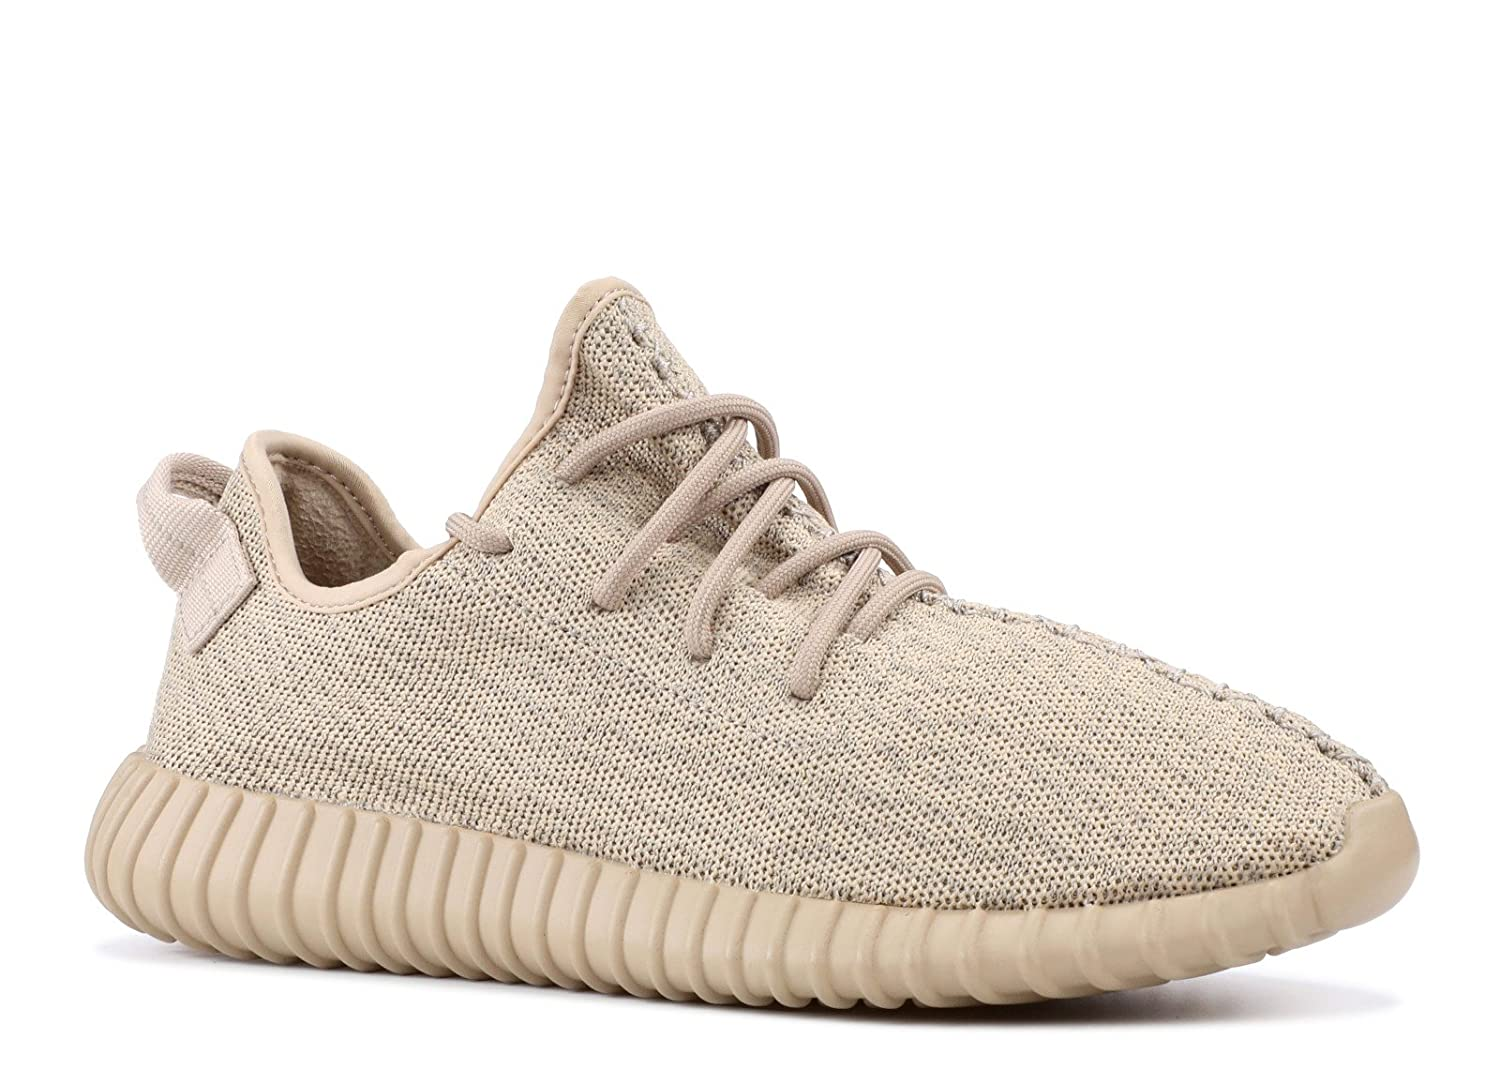 37221fe6e92e7 Adidas Yeezy Boost 350 Moonrock - AGAGRA MOONRO AGAGRA Trainer   Amazon.co.uk  Shoes   Bags